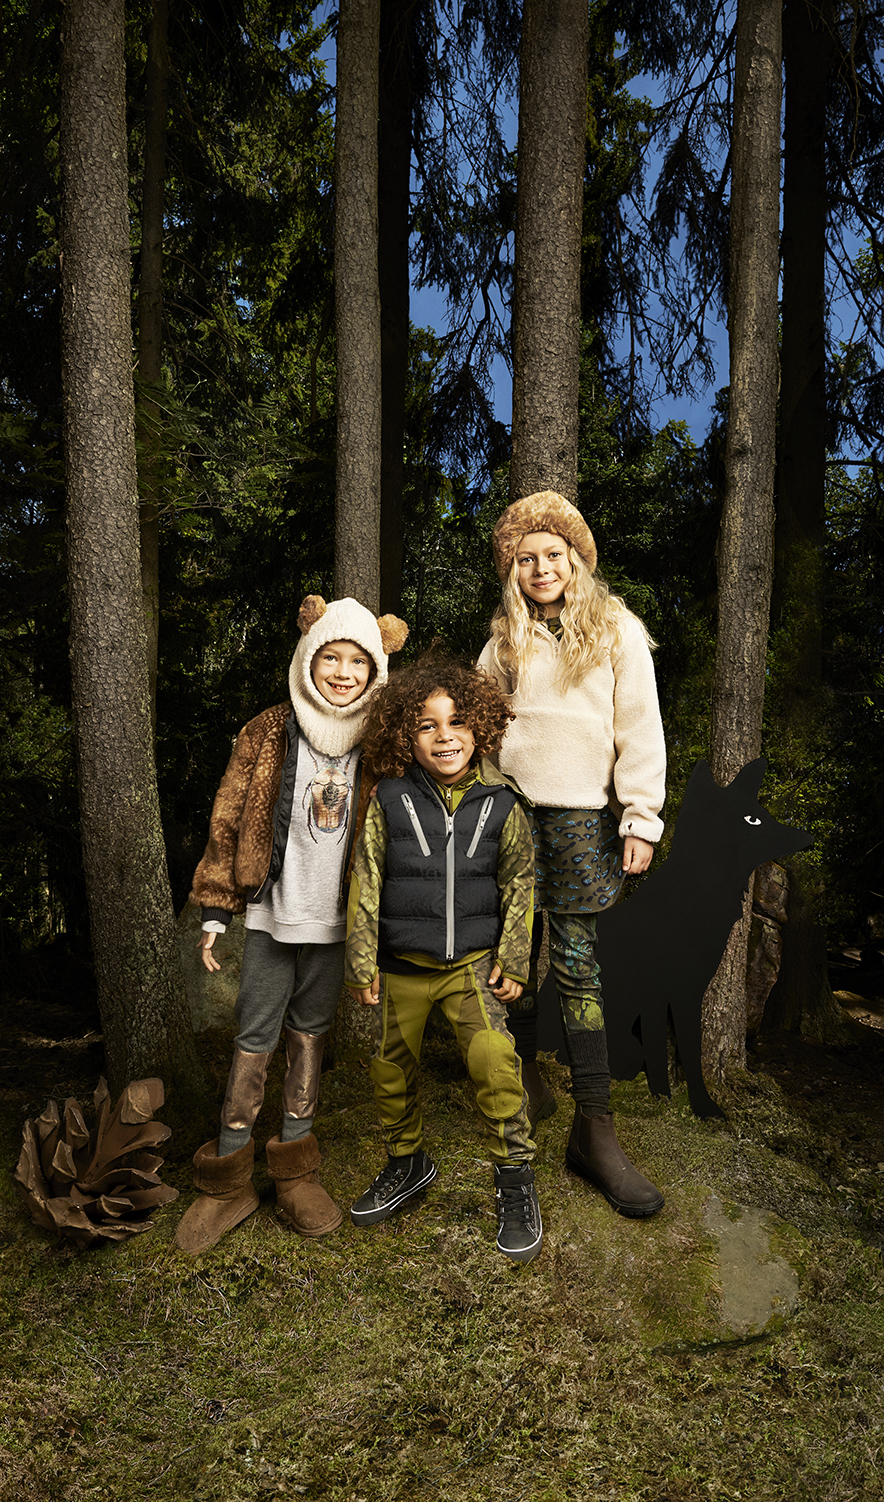 h&m-all-for-children-unicef-2014-05